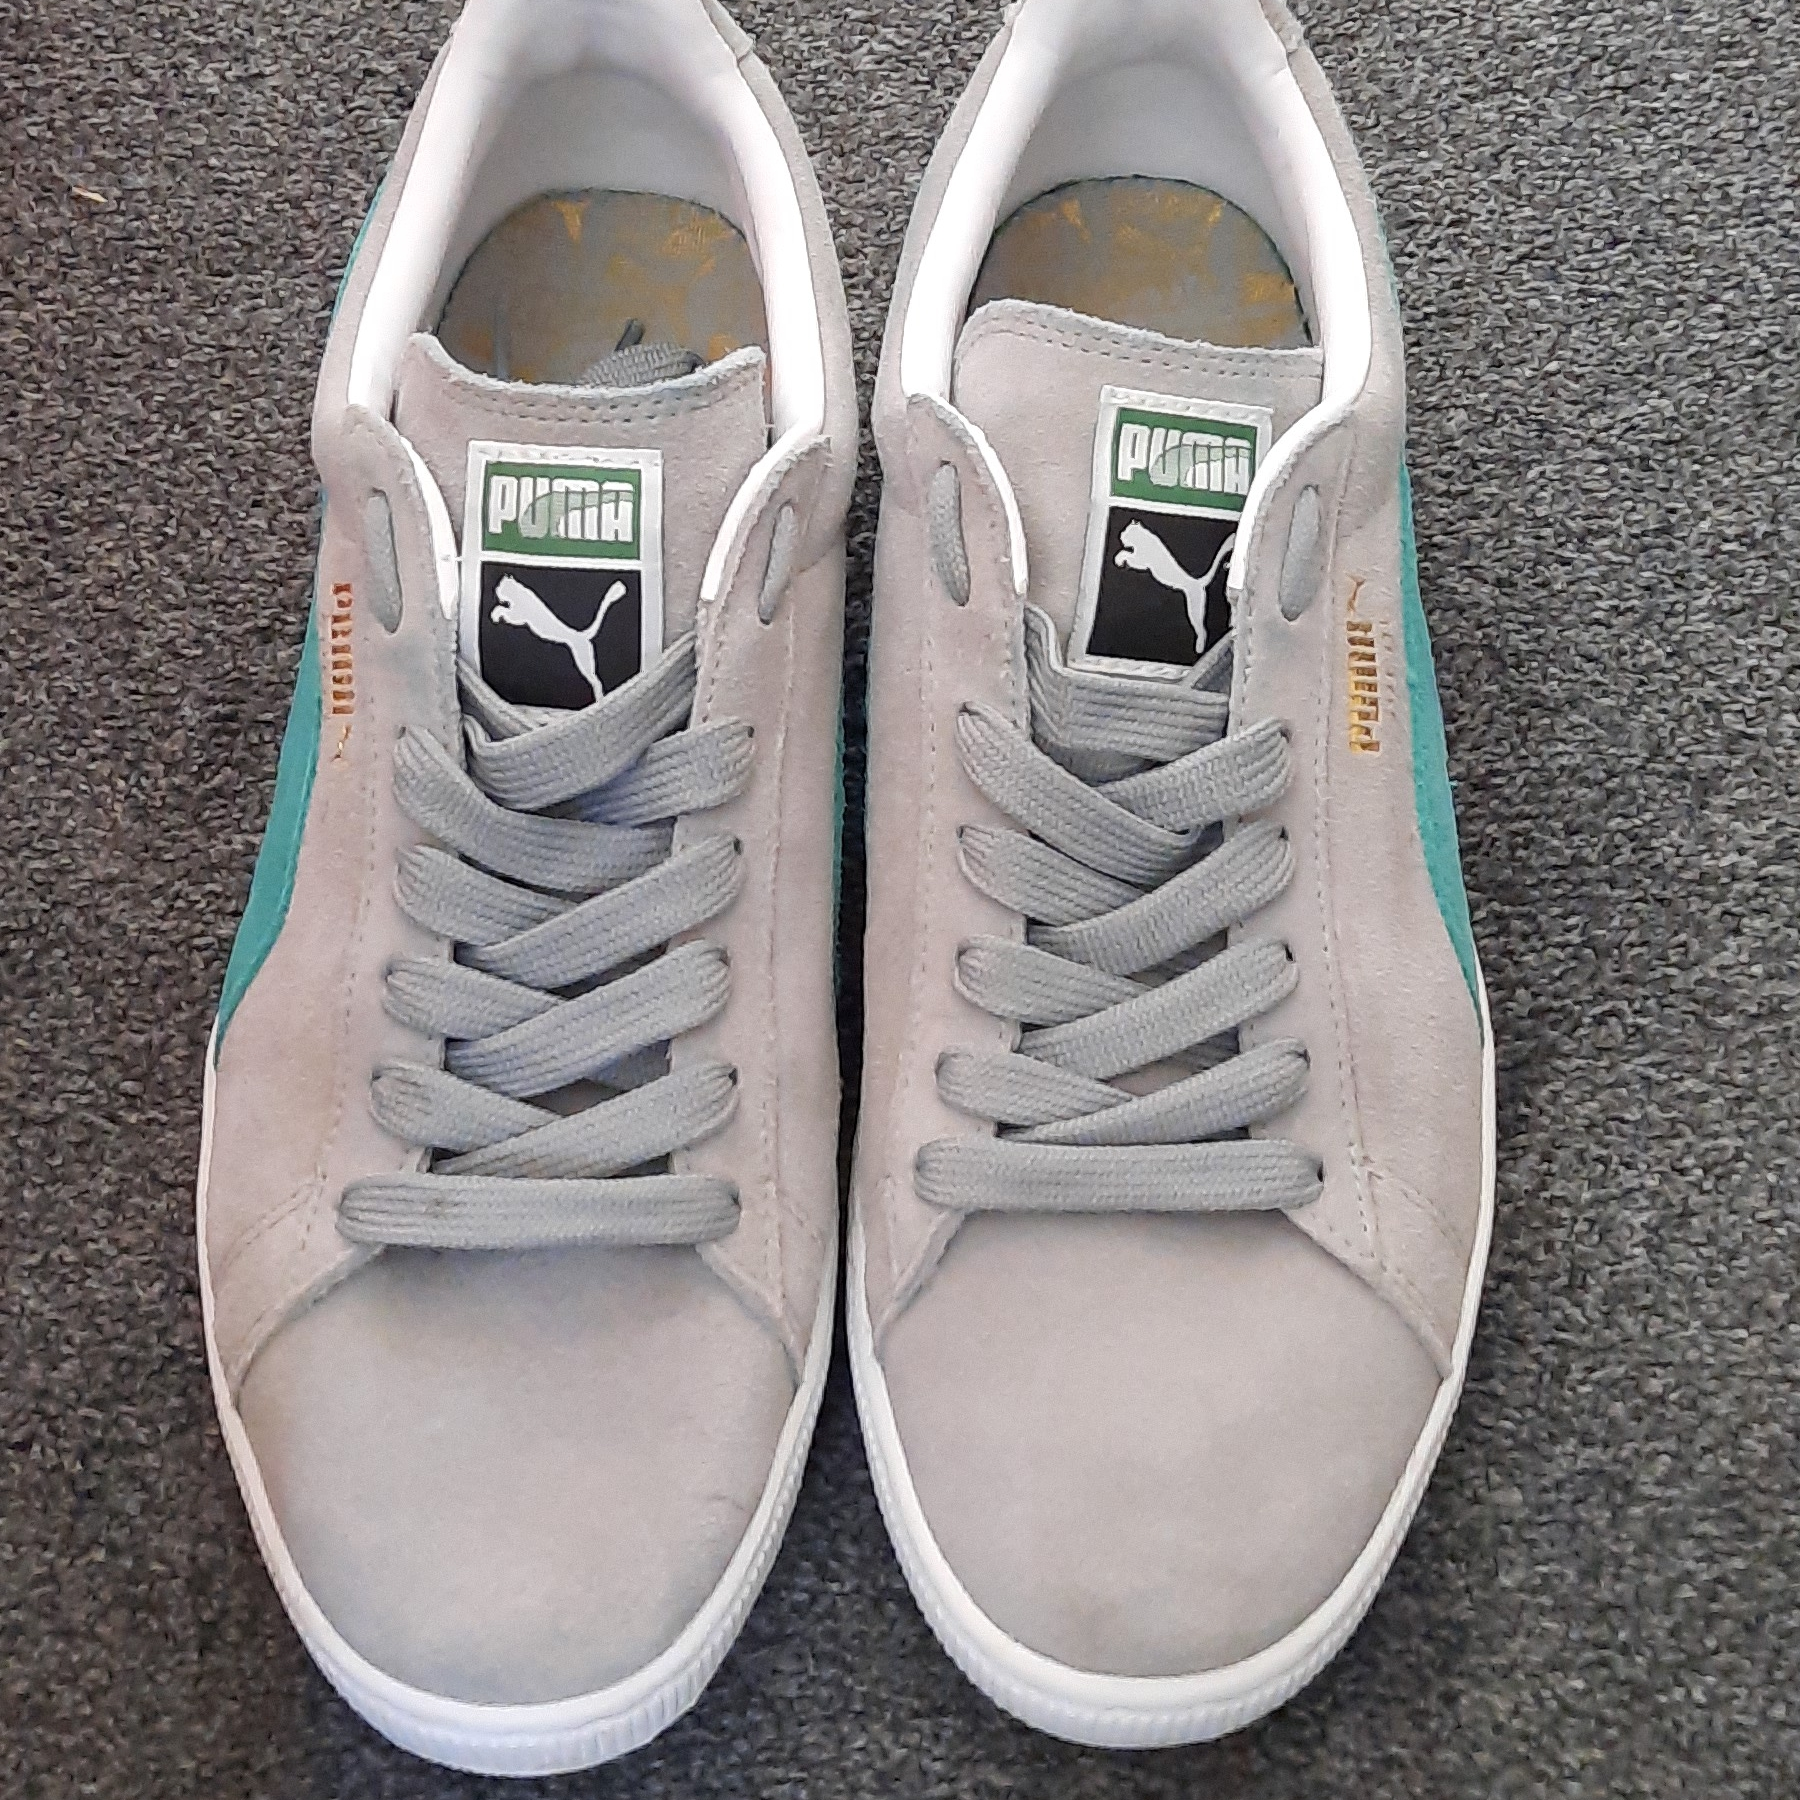 MENS Puma Trainers - size 9 Suede